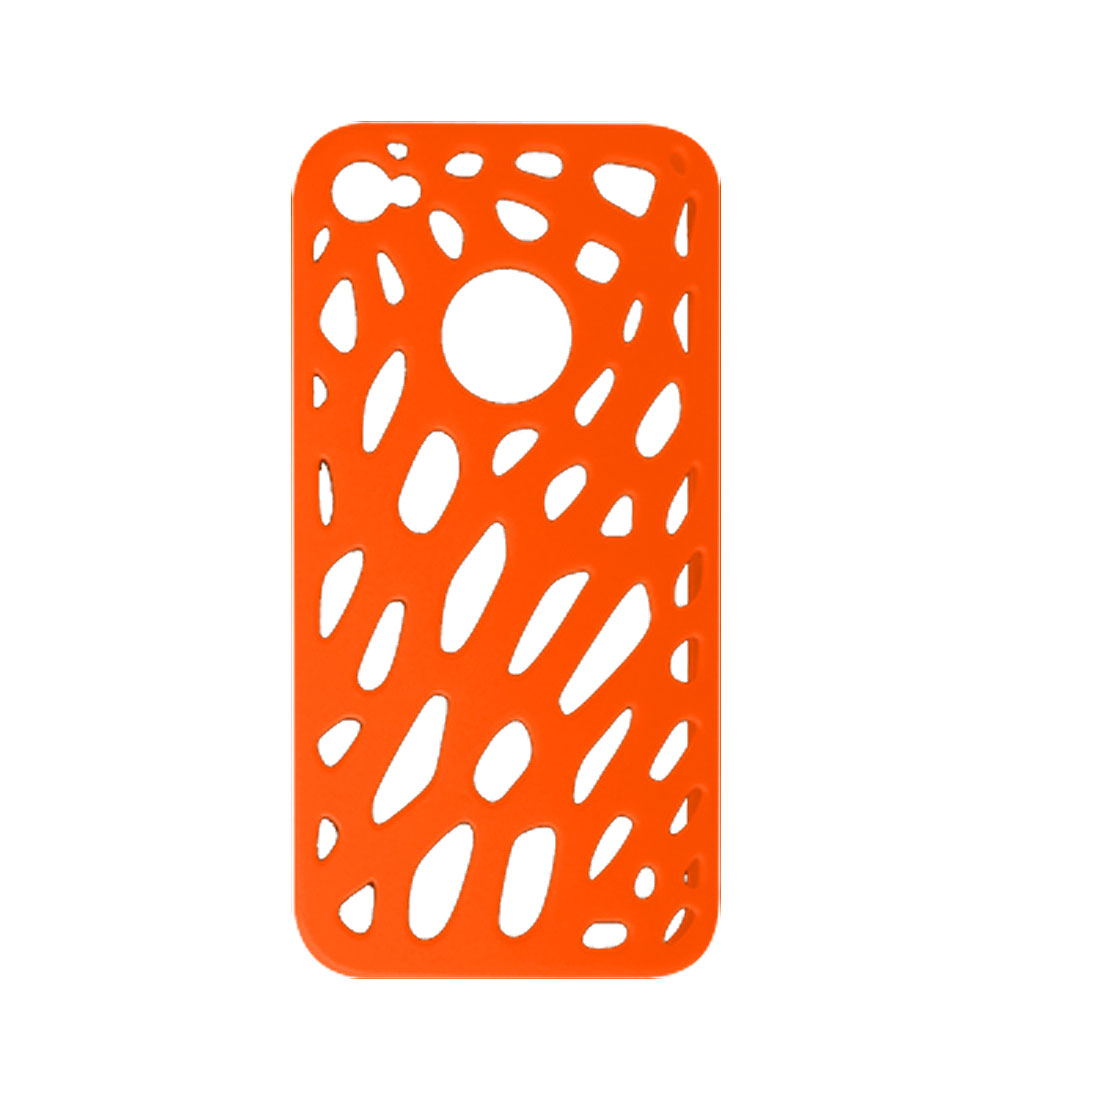 Orange Rubberized Hard Plastic Hole Design Case for Apple iPhone 4 4G